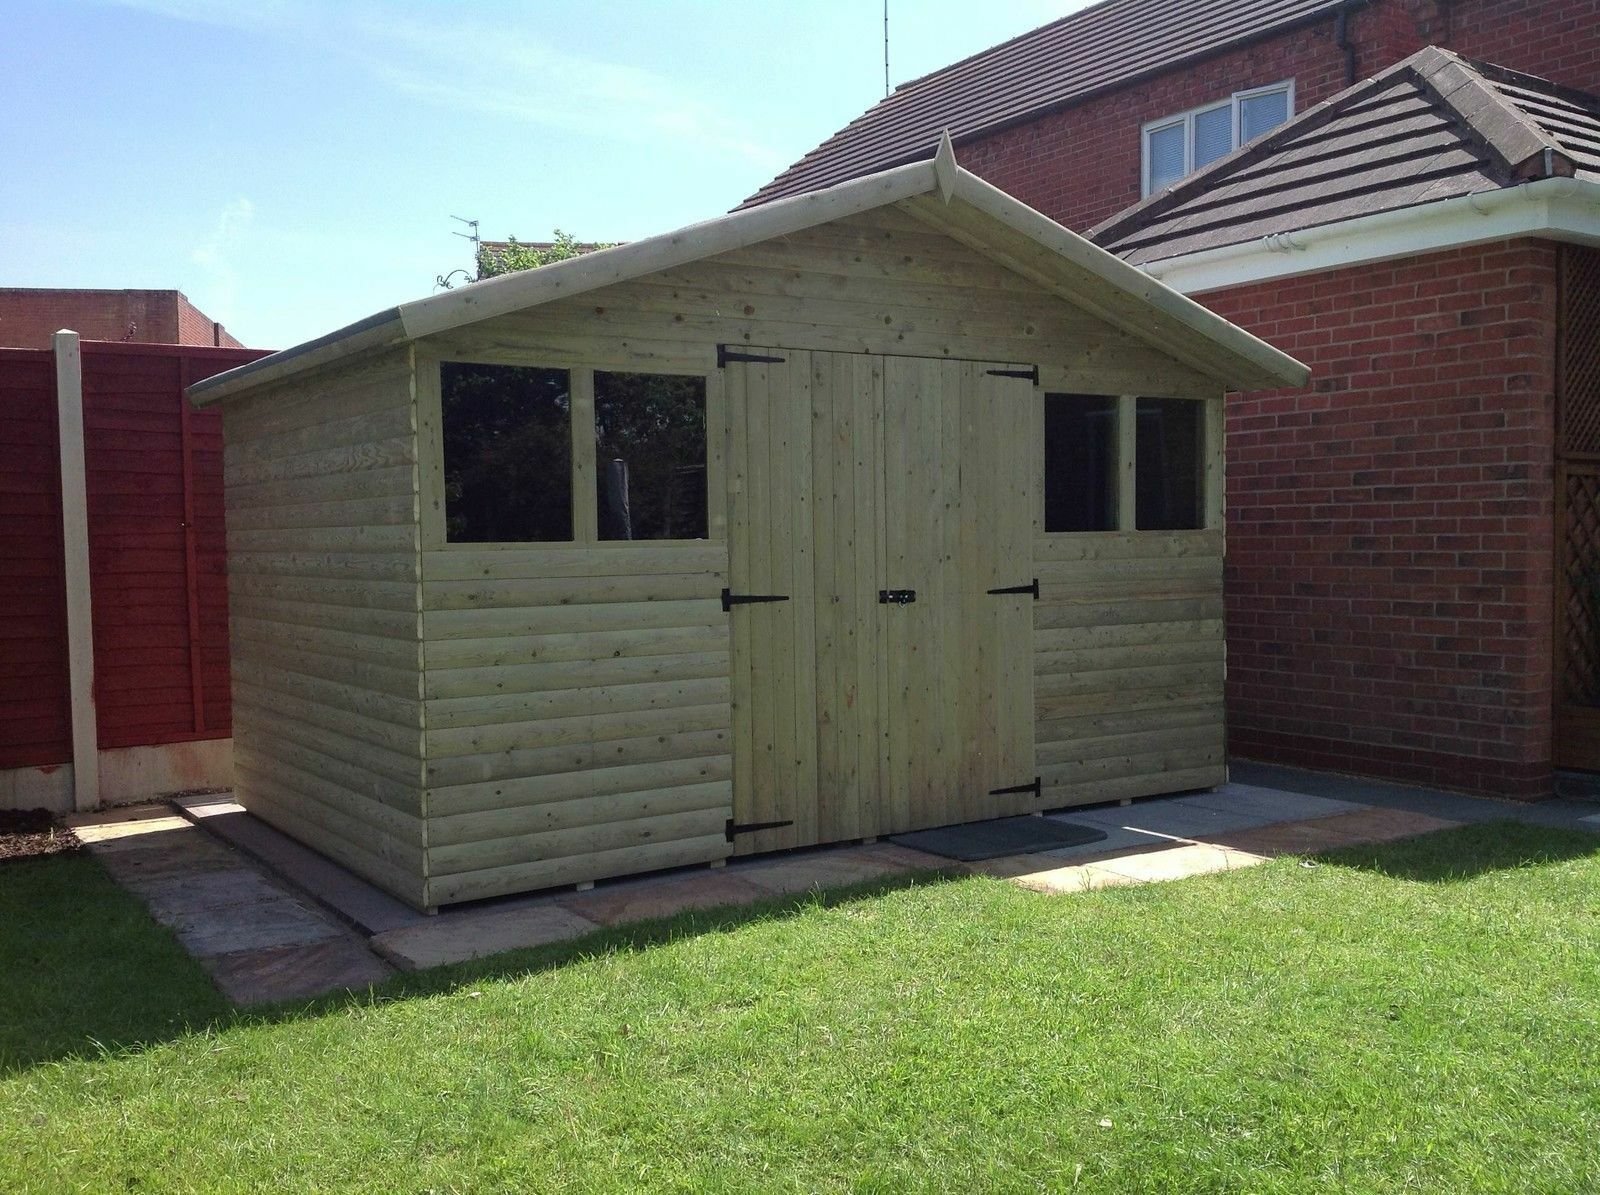 12x10 reverse loglap t g apex shed 1 picclick uk for Garden shed 12x10